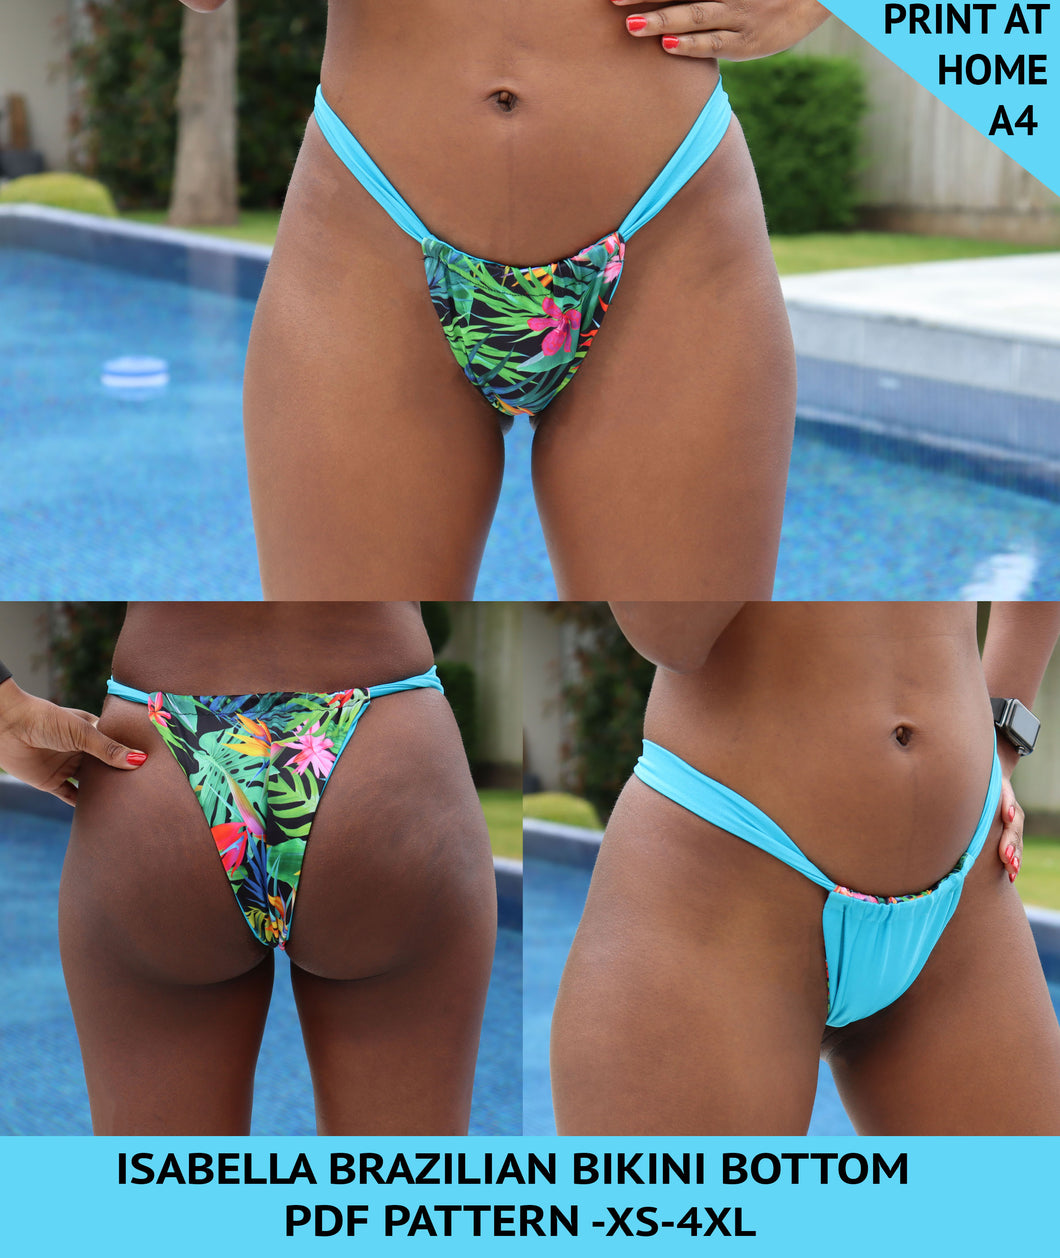 Isabella brazilian bikini bottom pattern, gigipatterns, gigi fashion designer